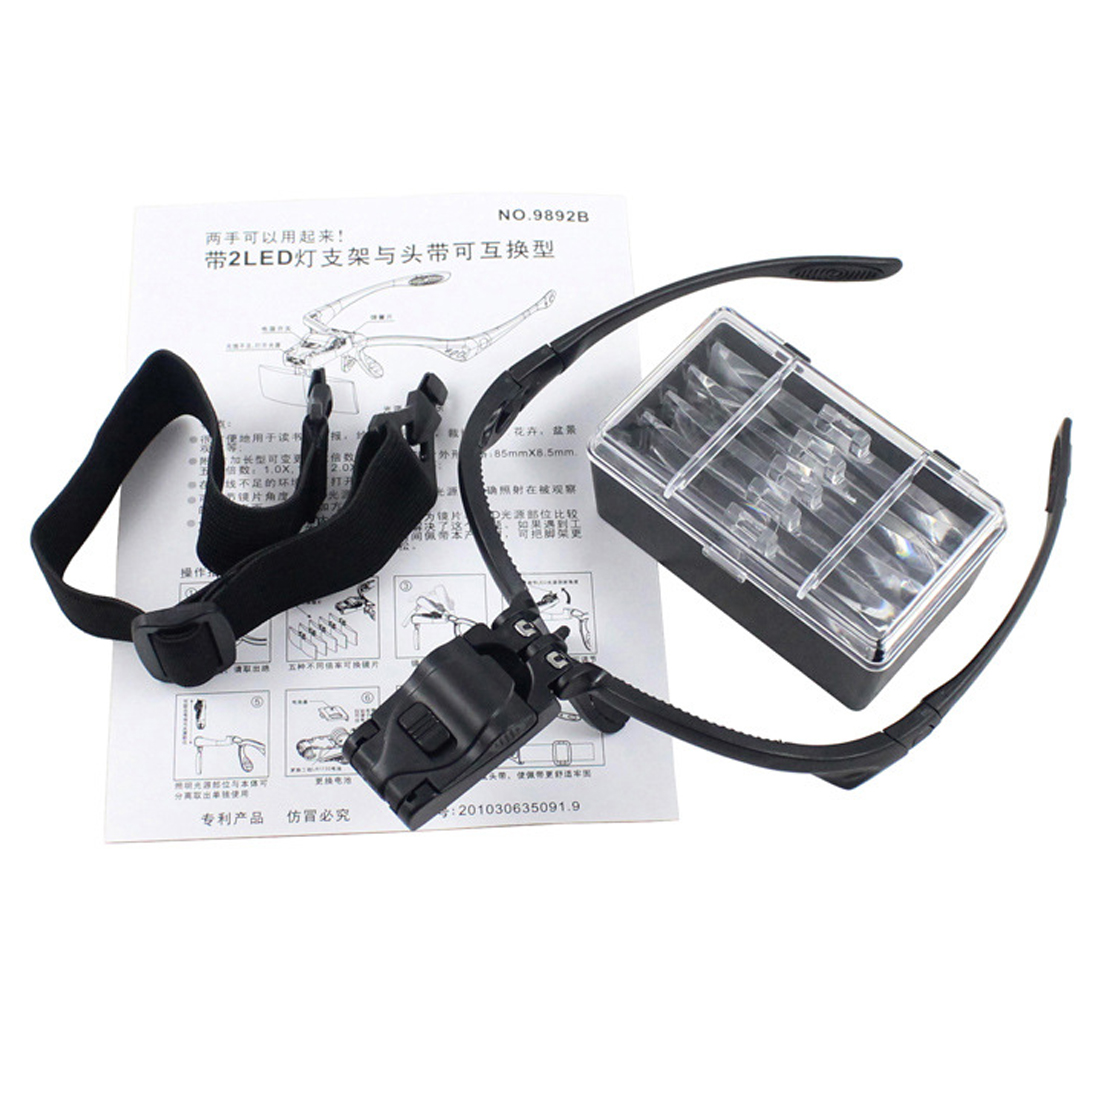 Useful 1.0X 1.5X 2.0X 2.5X 3.5X 5 Lens Adjustable Loupe Headband Magnifying Glass Magnifier with 2 LED Light Magnifying Glasses 1 0x 1 5x 2 0x 2 5x 3 5x adjustable 5 lens loupe led light headband magnifier glass led magnifying glasses with lamp